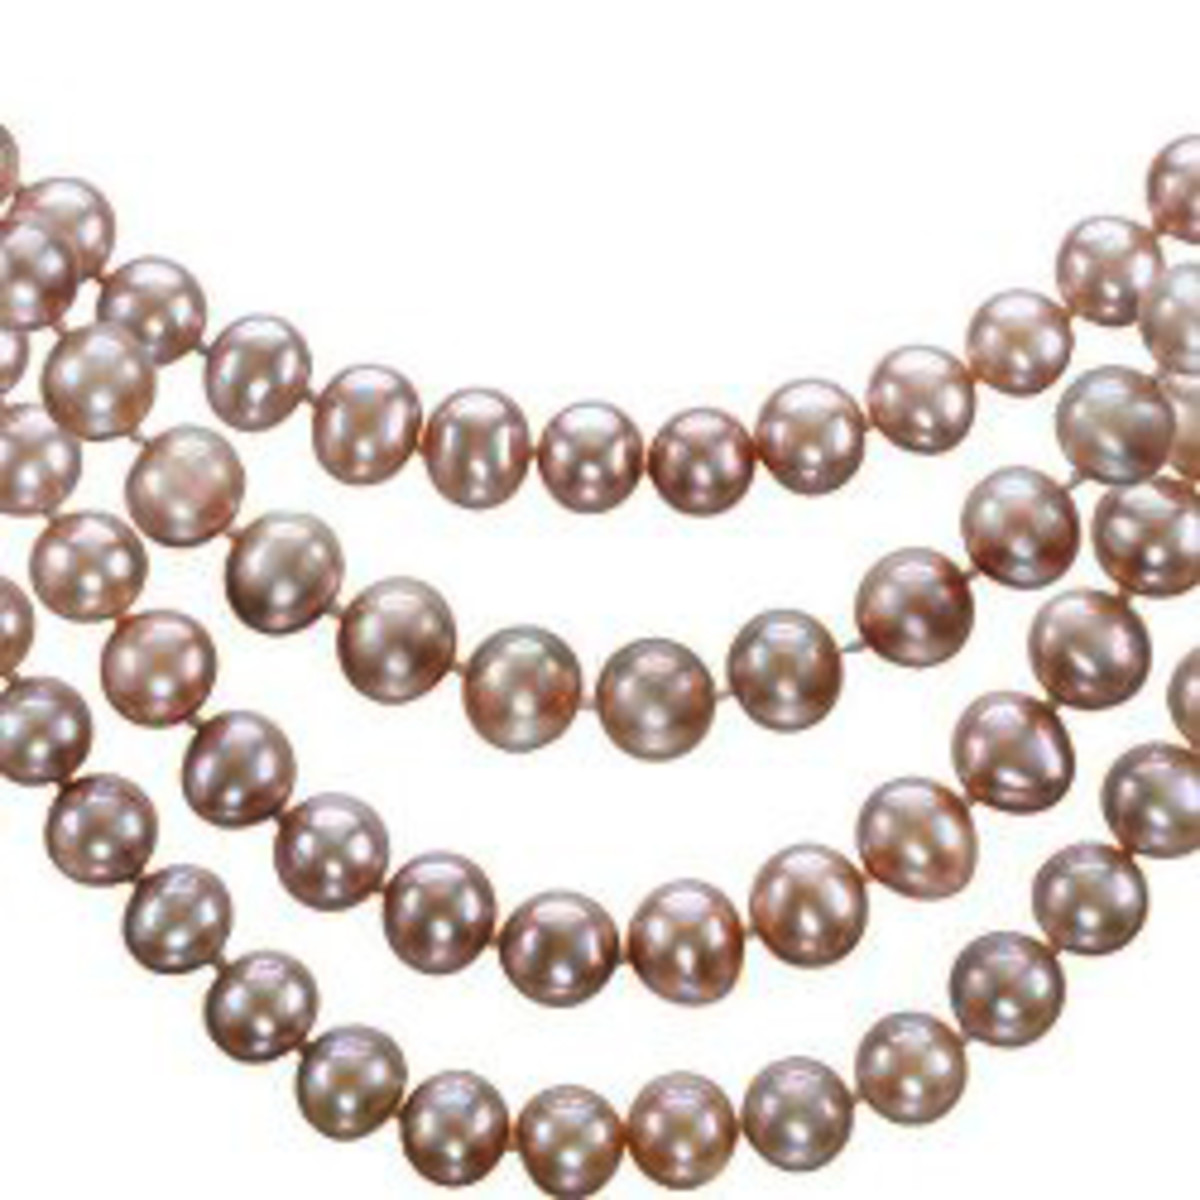 Ultra-Luster Naturally Pink Cultured Freshwater Pearl Rope Necklace